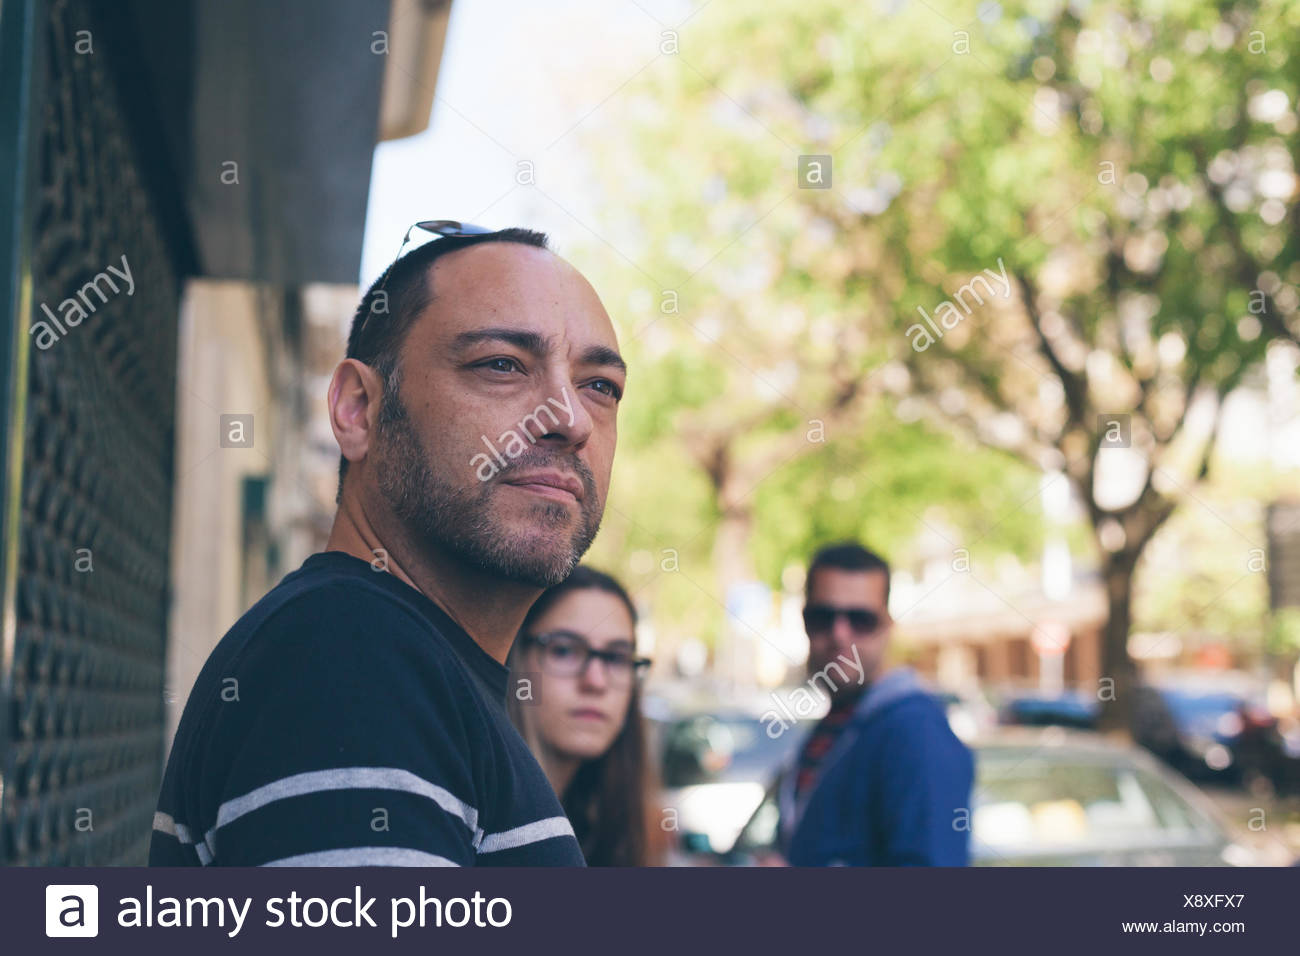 Mid Adult Man Looking Away On Footpath - Stock Image